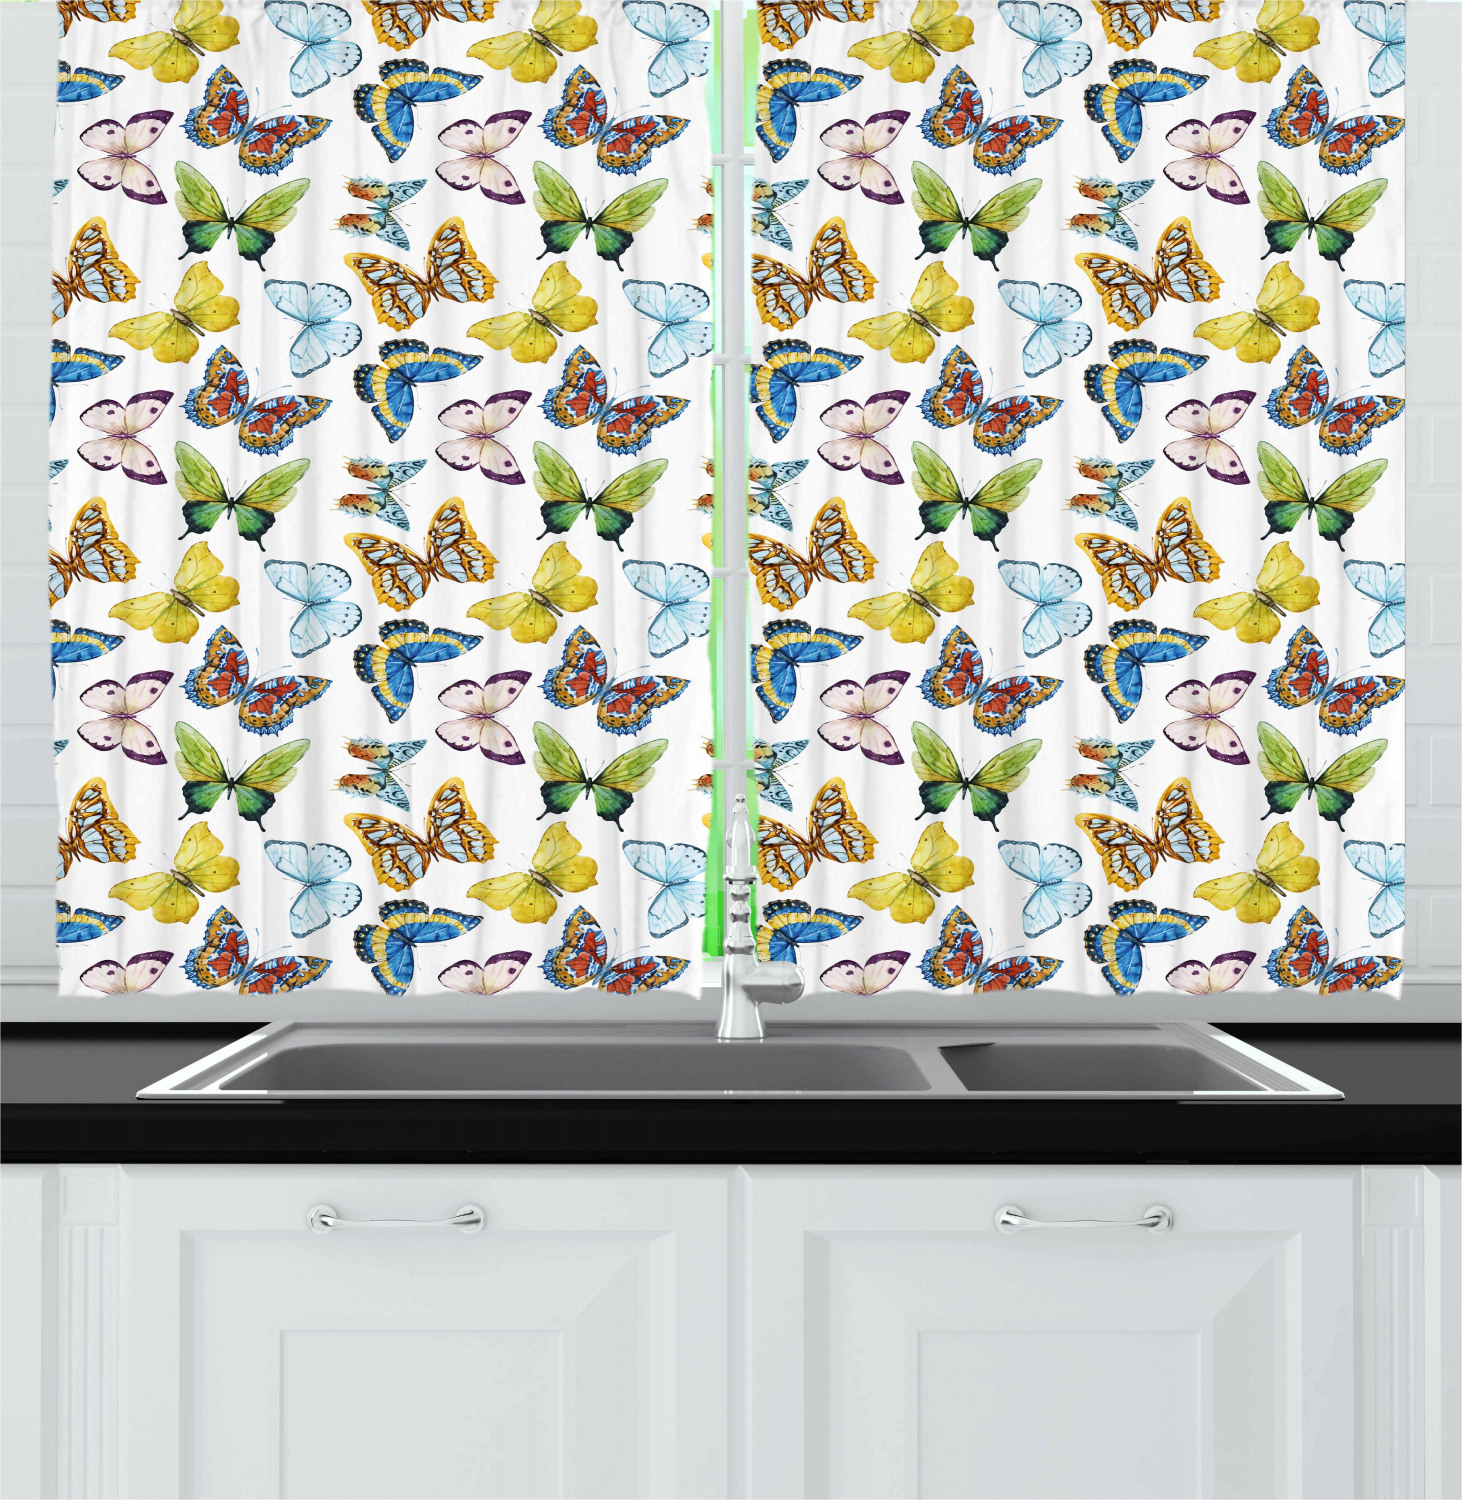 Details about Butterfly Kitchen Curtains 2 Panel Set Window Drapes 55\